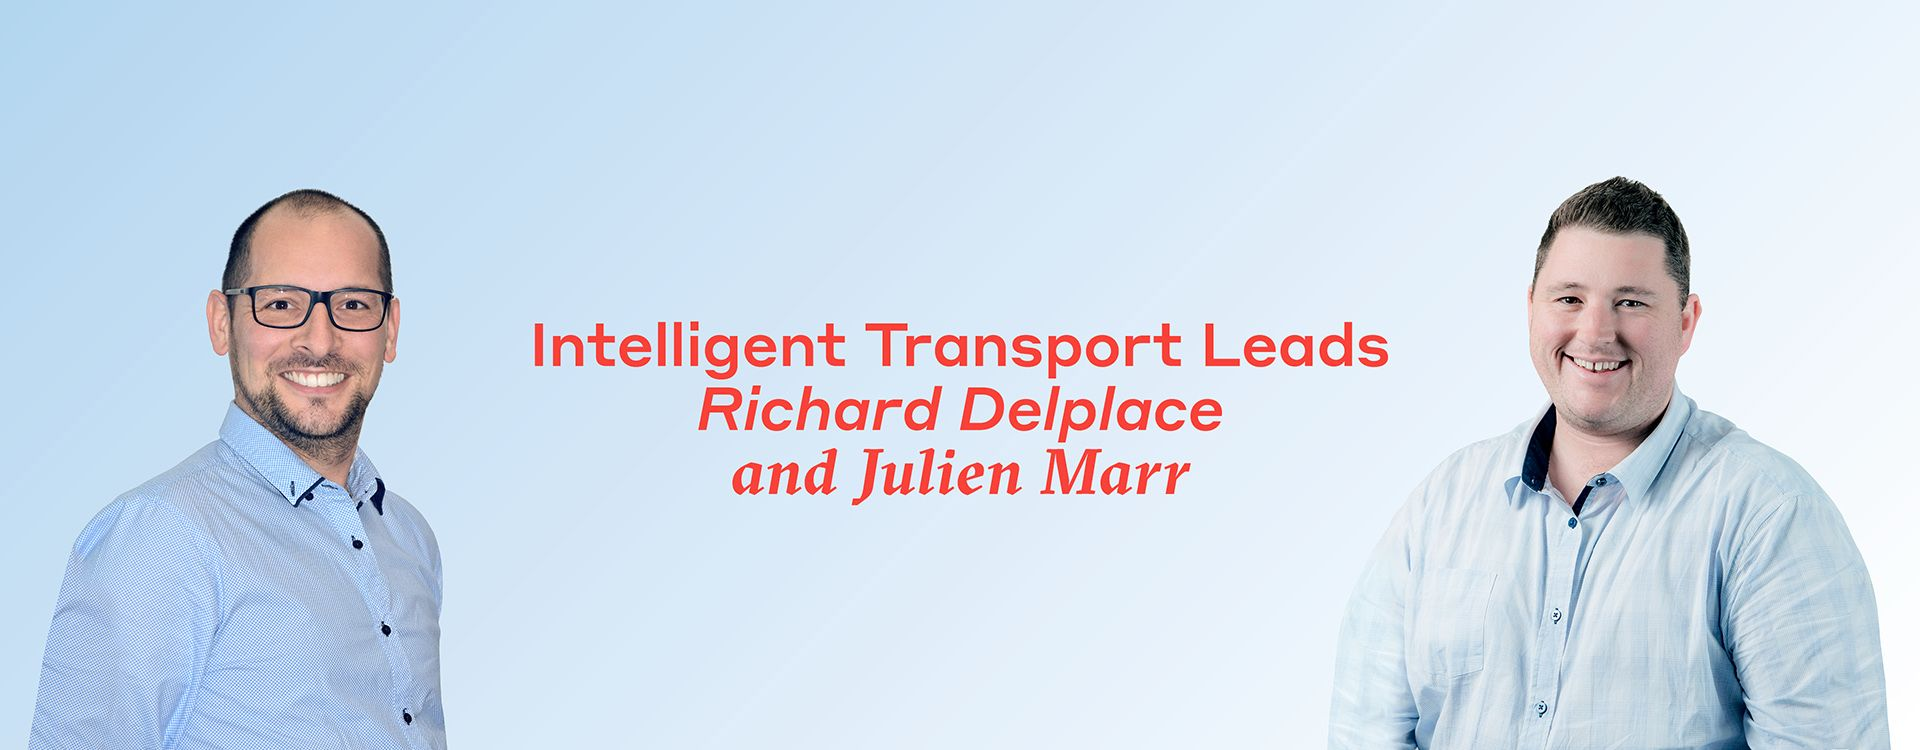 Intelligent Transport leads, Richard Delplace and Julien Marr, speak about the future of transportation at the ITS Summit